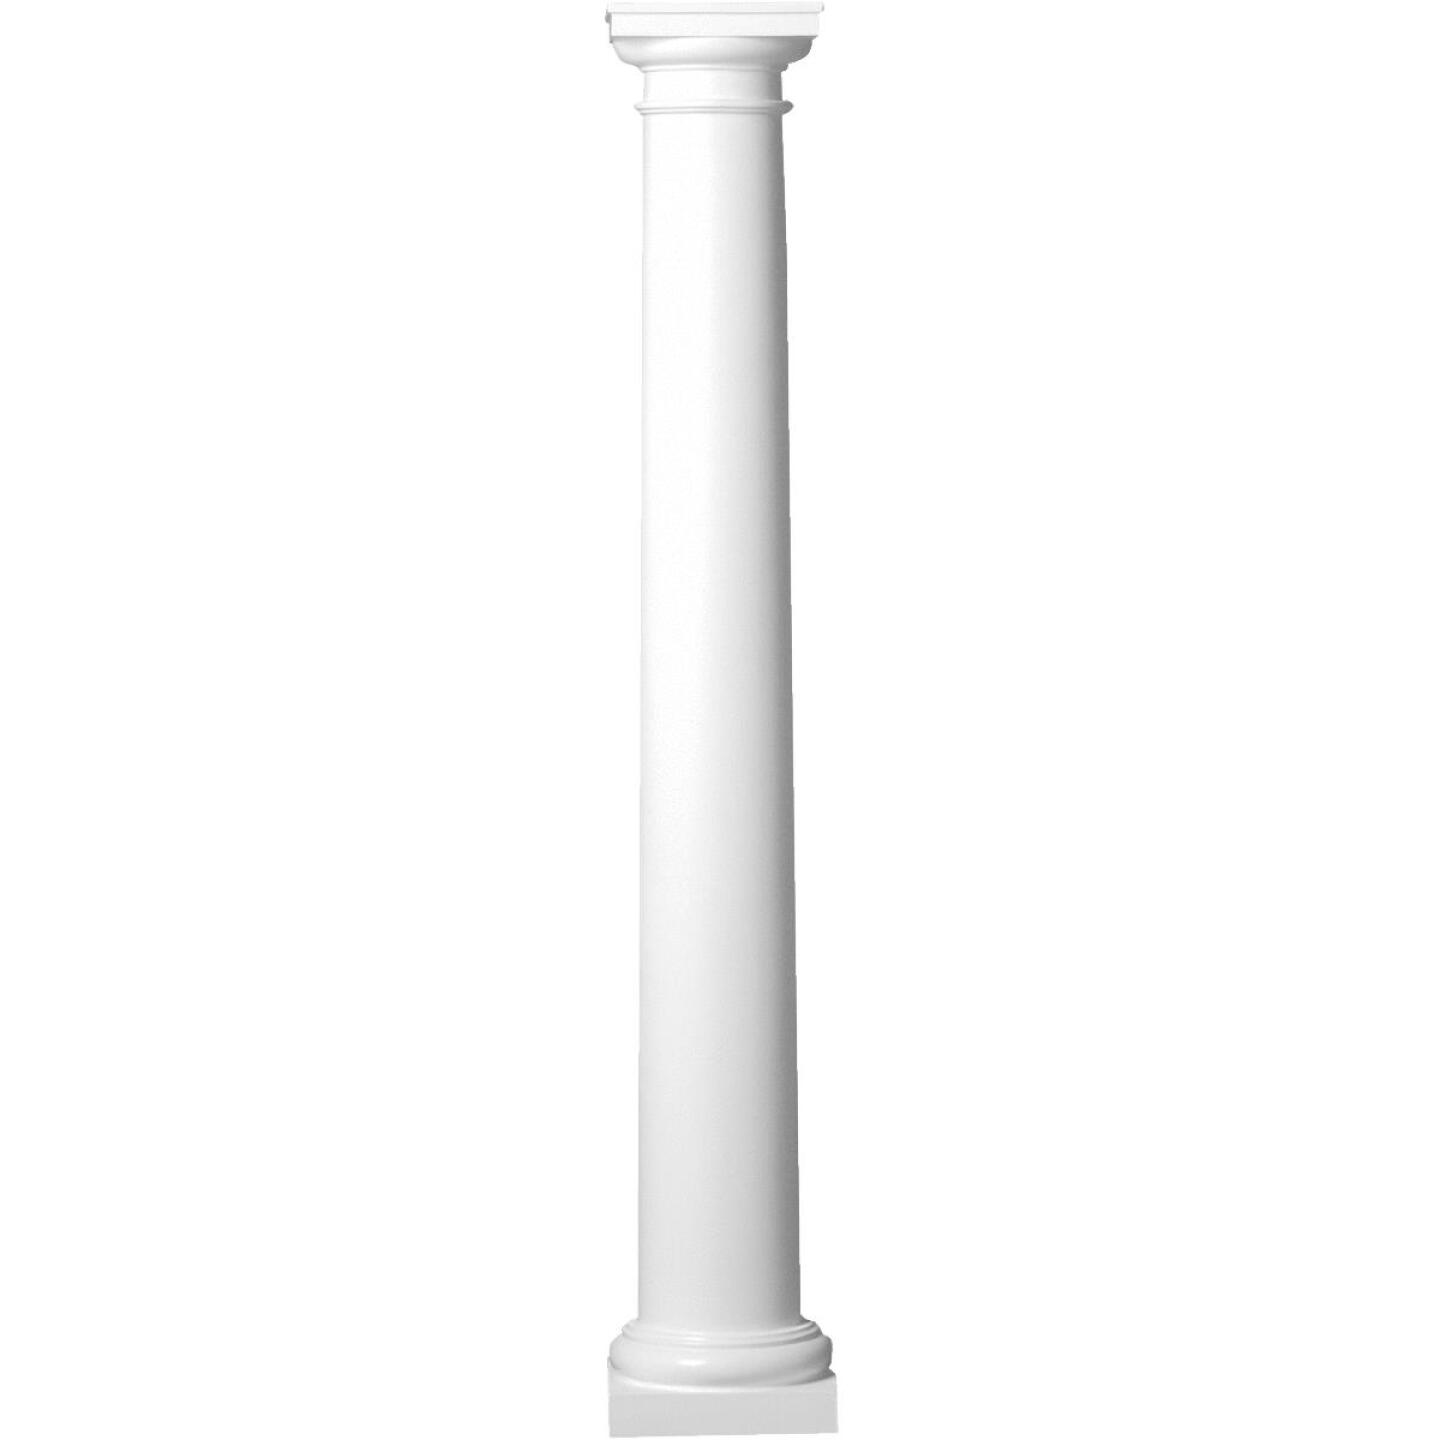 Crown Column 10 In. x 8 Ft. Unfinished Round Fiberglass Column Image 1